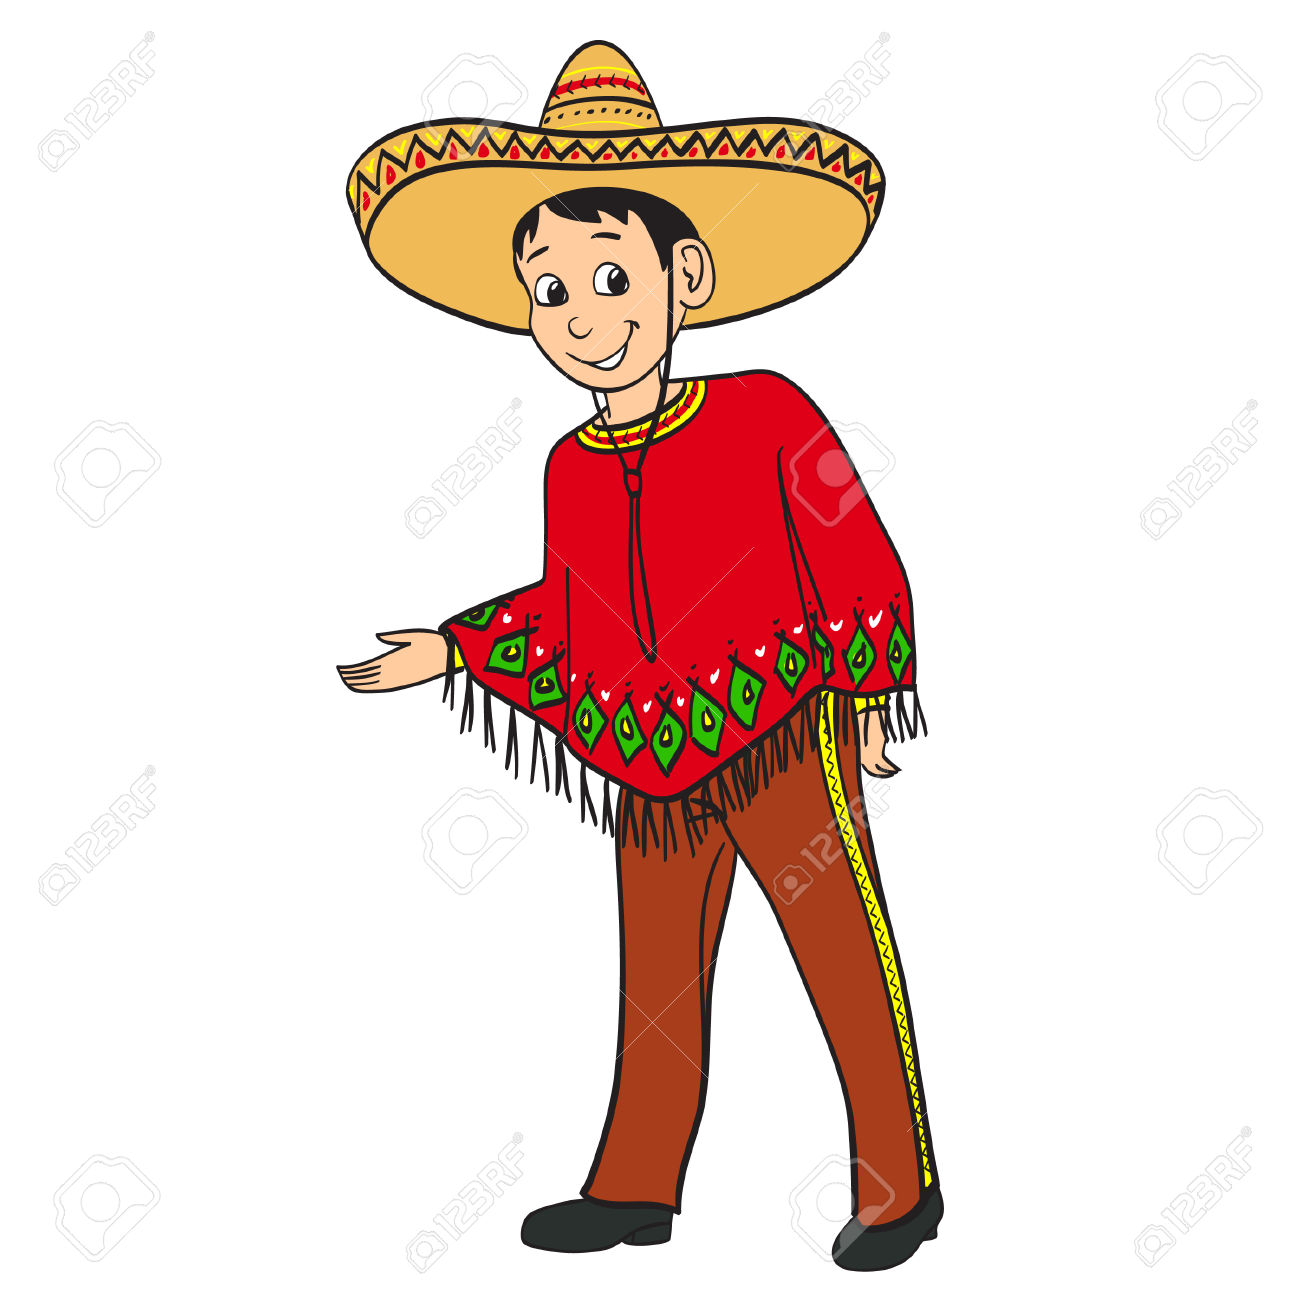 Mexican traditional dress clipart svg royalty free download Mexican Boy Dressed In A Traditional Suit Royalty Free Cliparts ... svg royalty free download